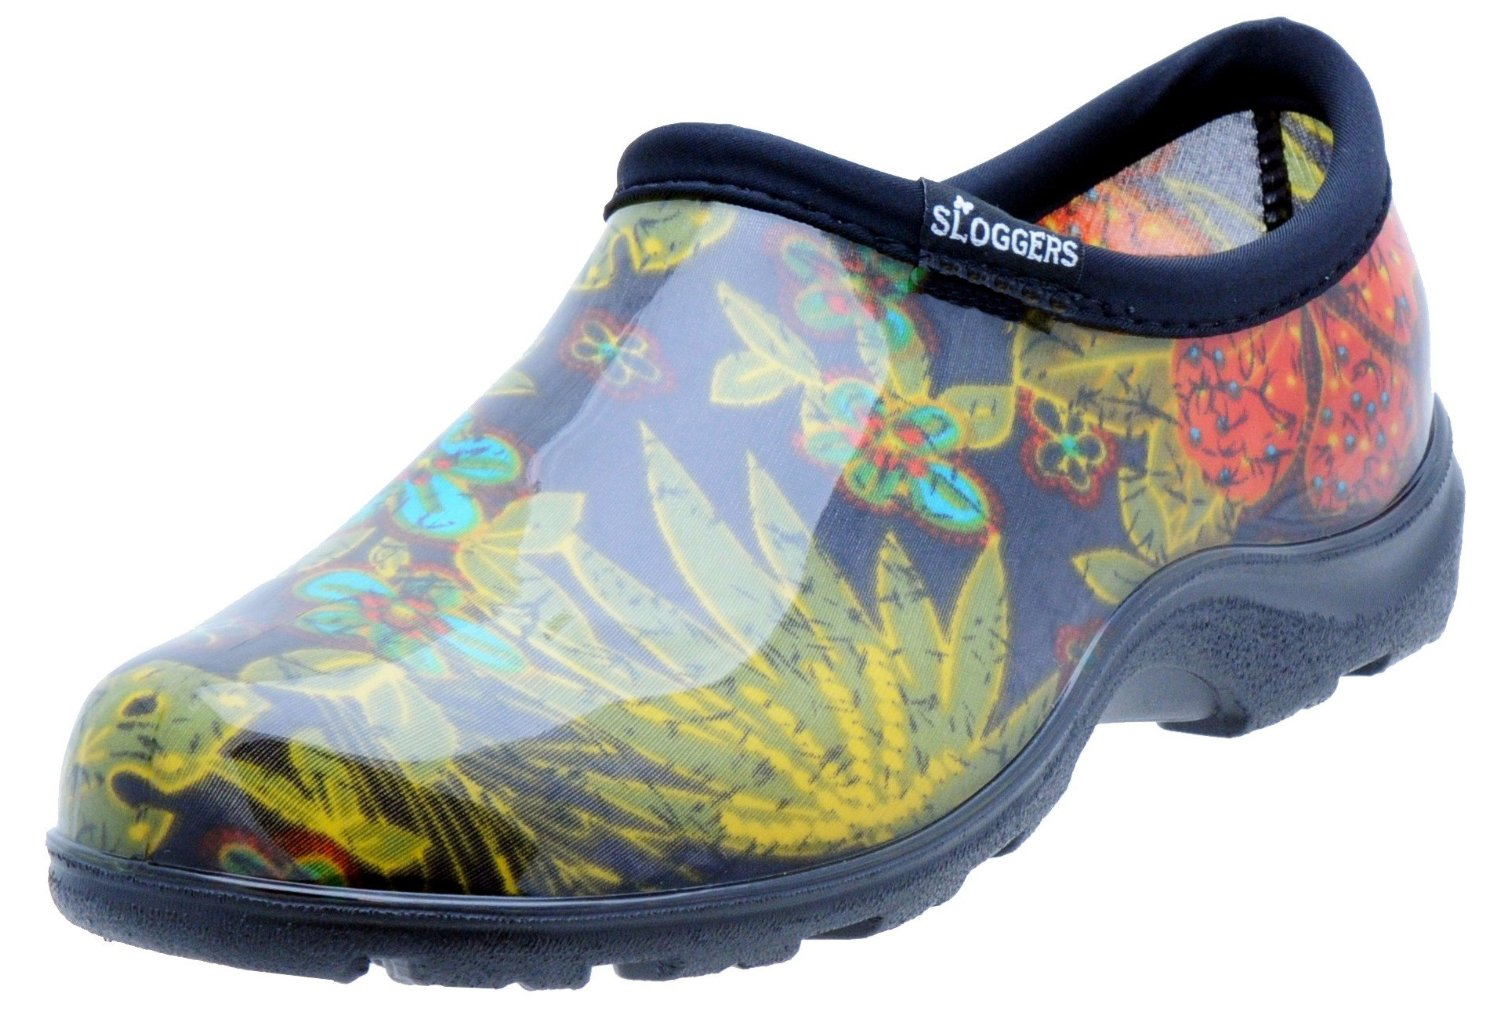 Sloggers Women S Rain And Garden Shoe Buy Usa Made Stuff